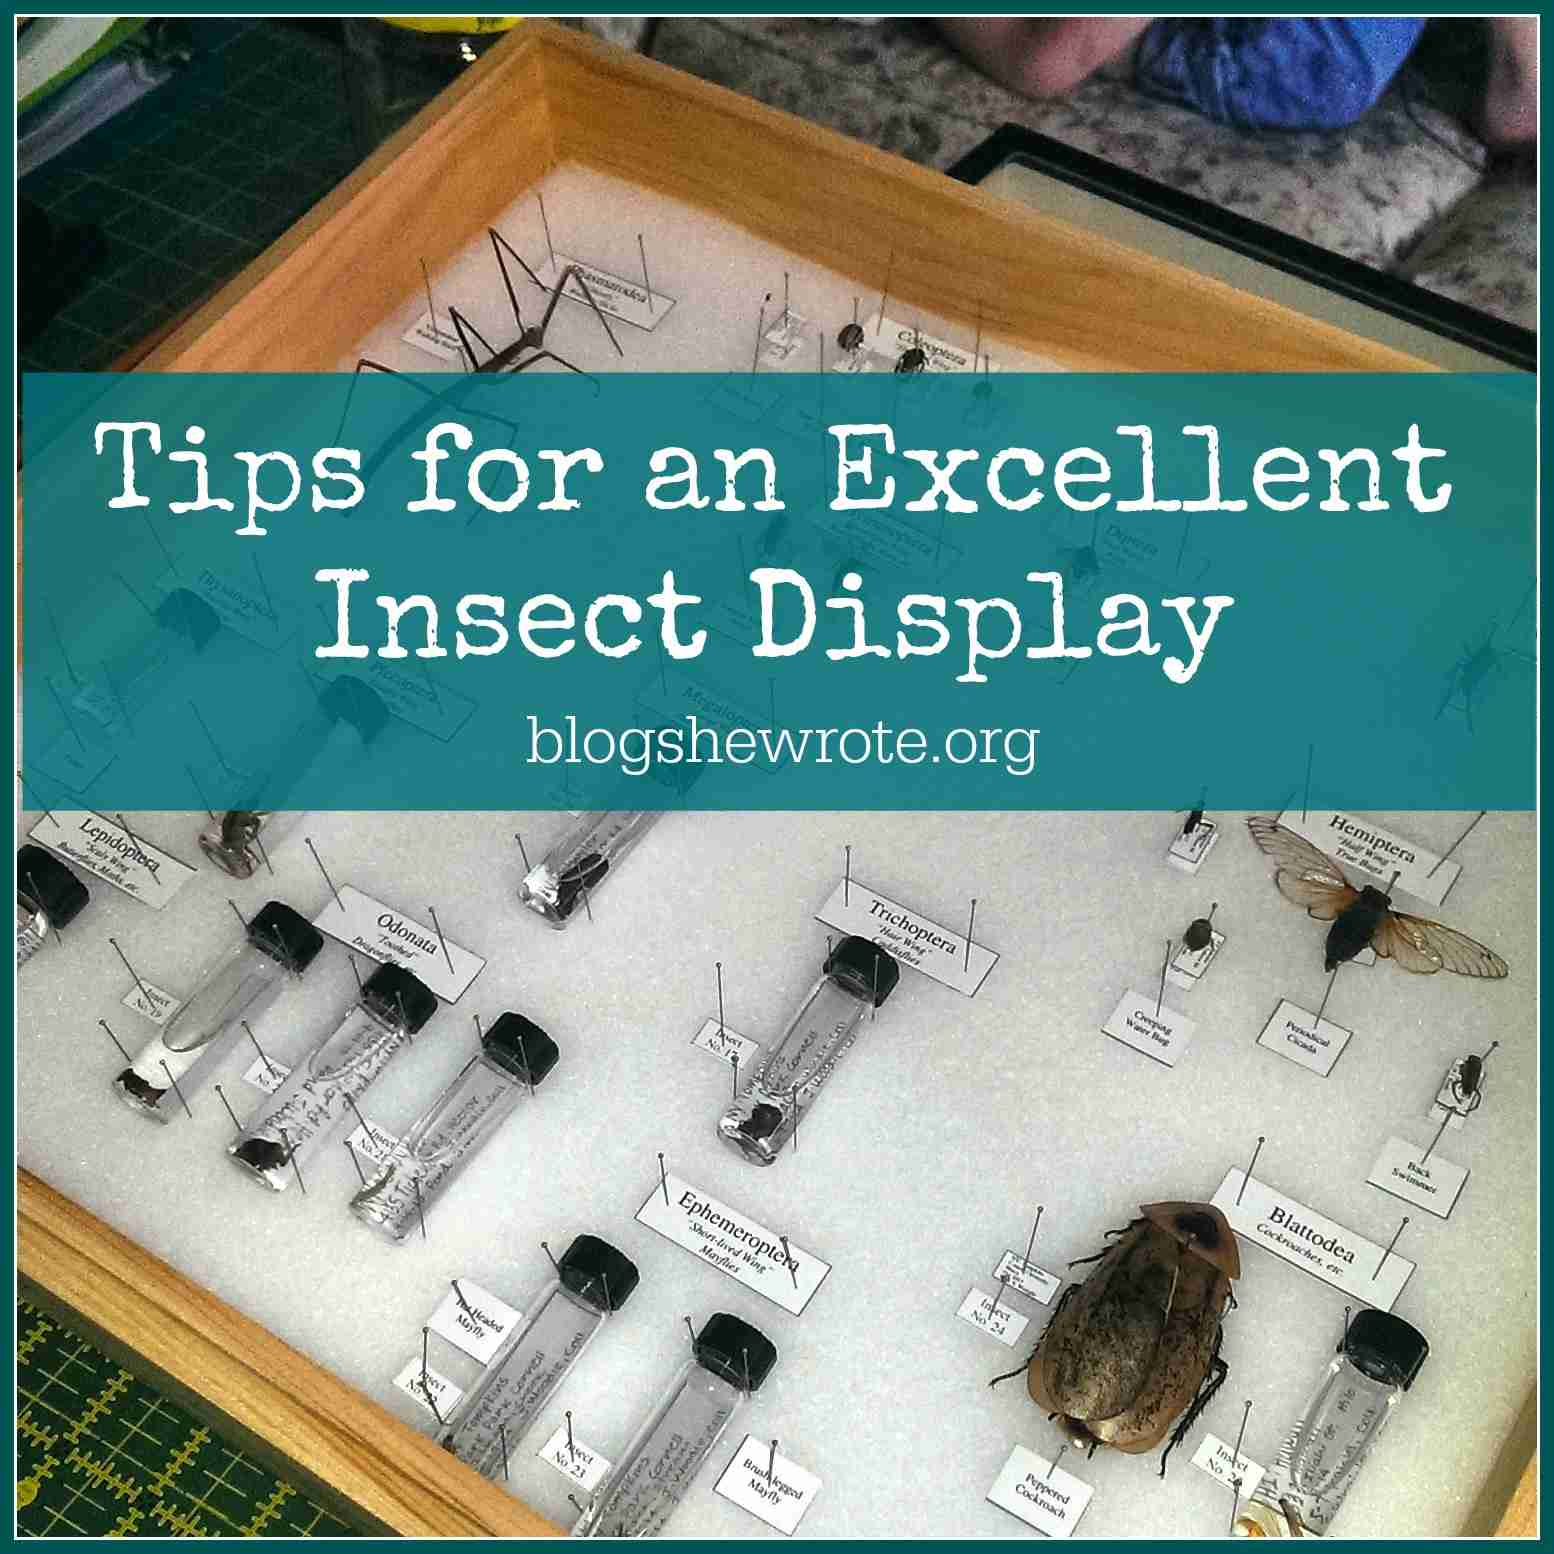 Blog, She Wrote: Tips for an Excellent Insect Display